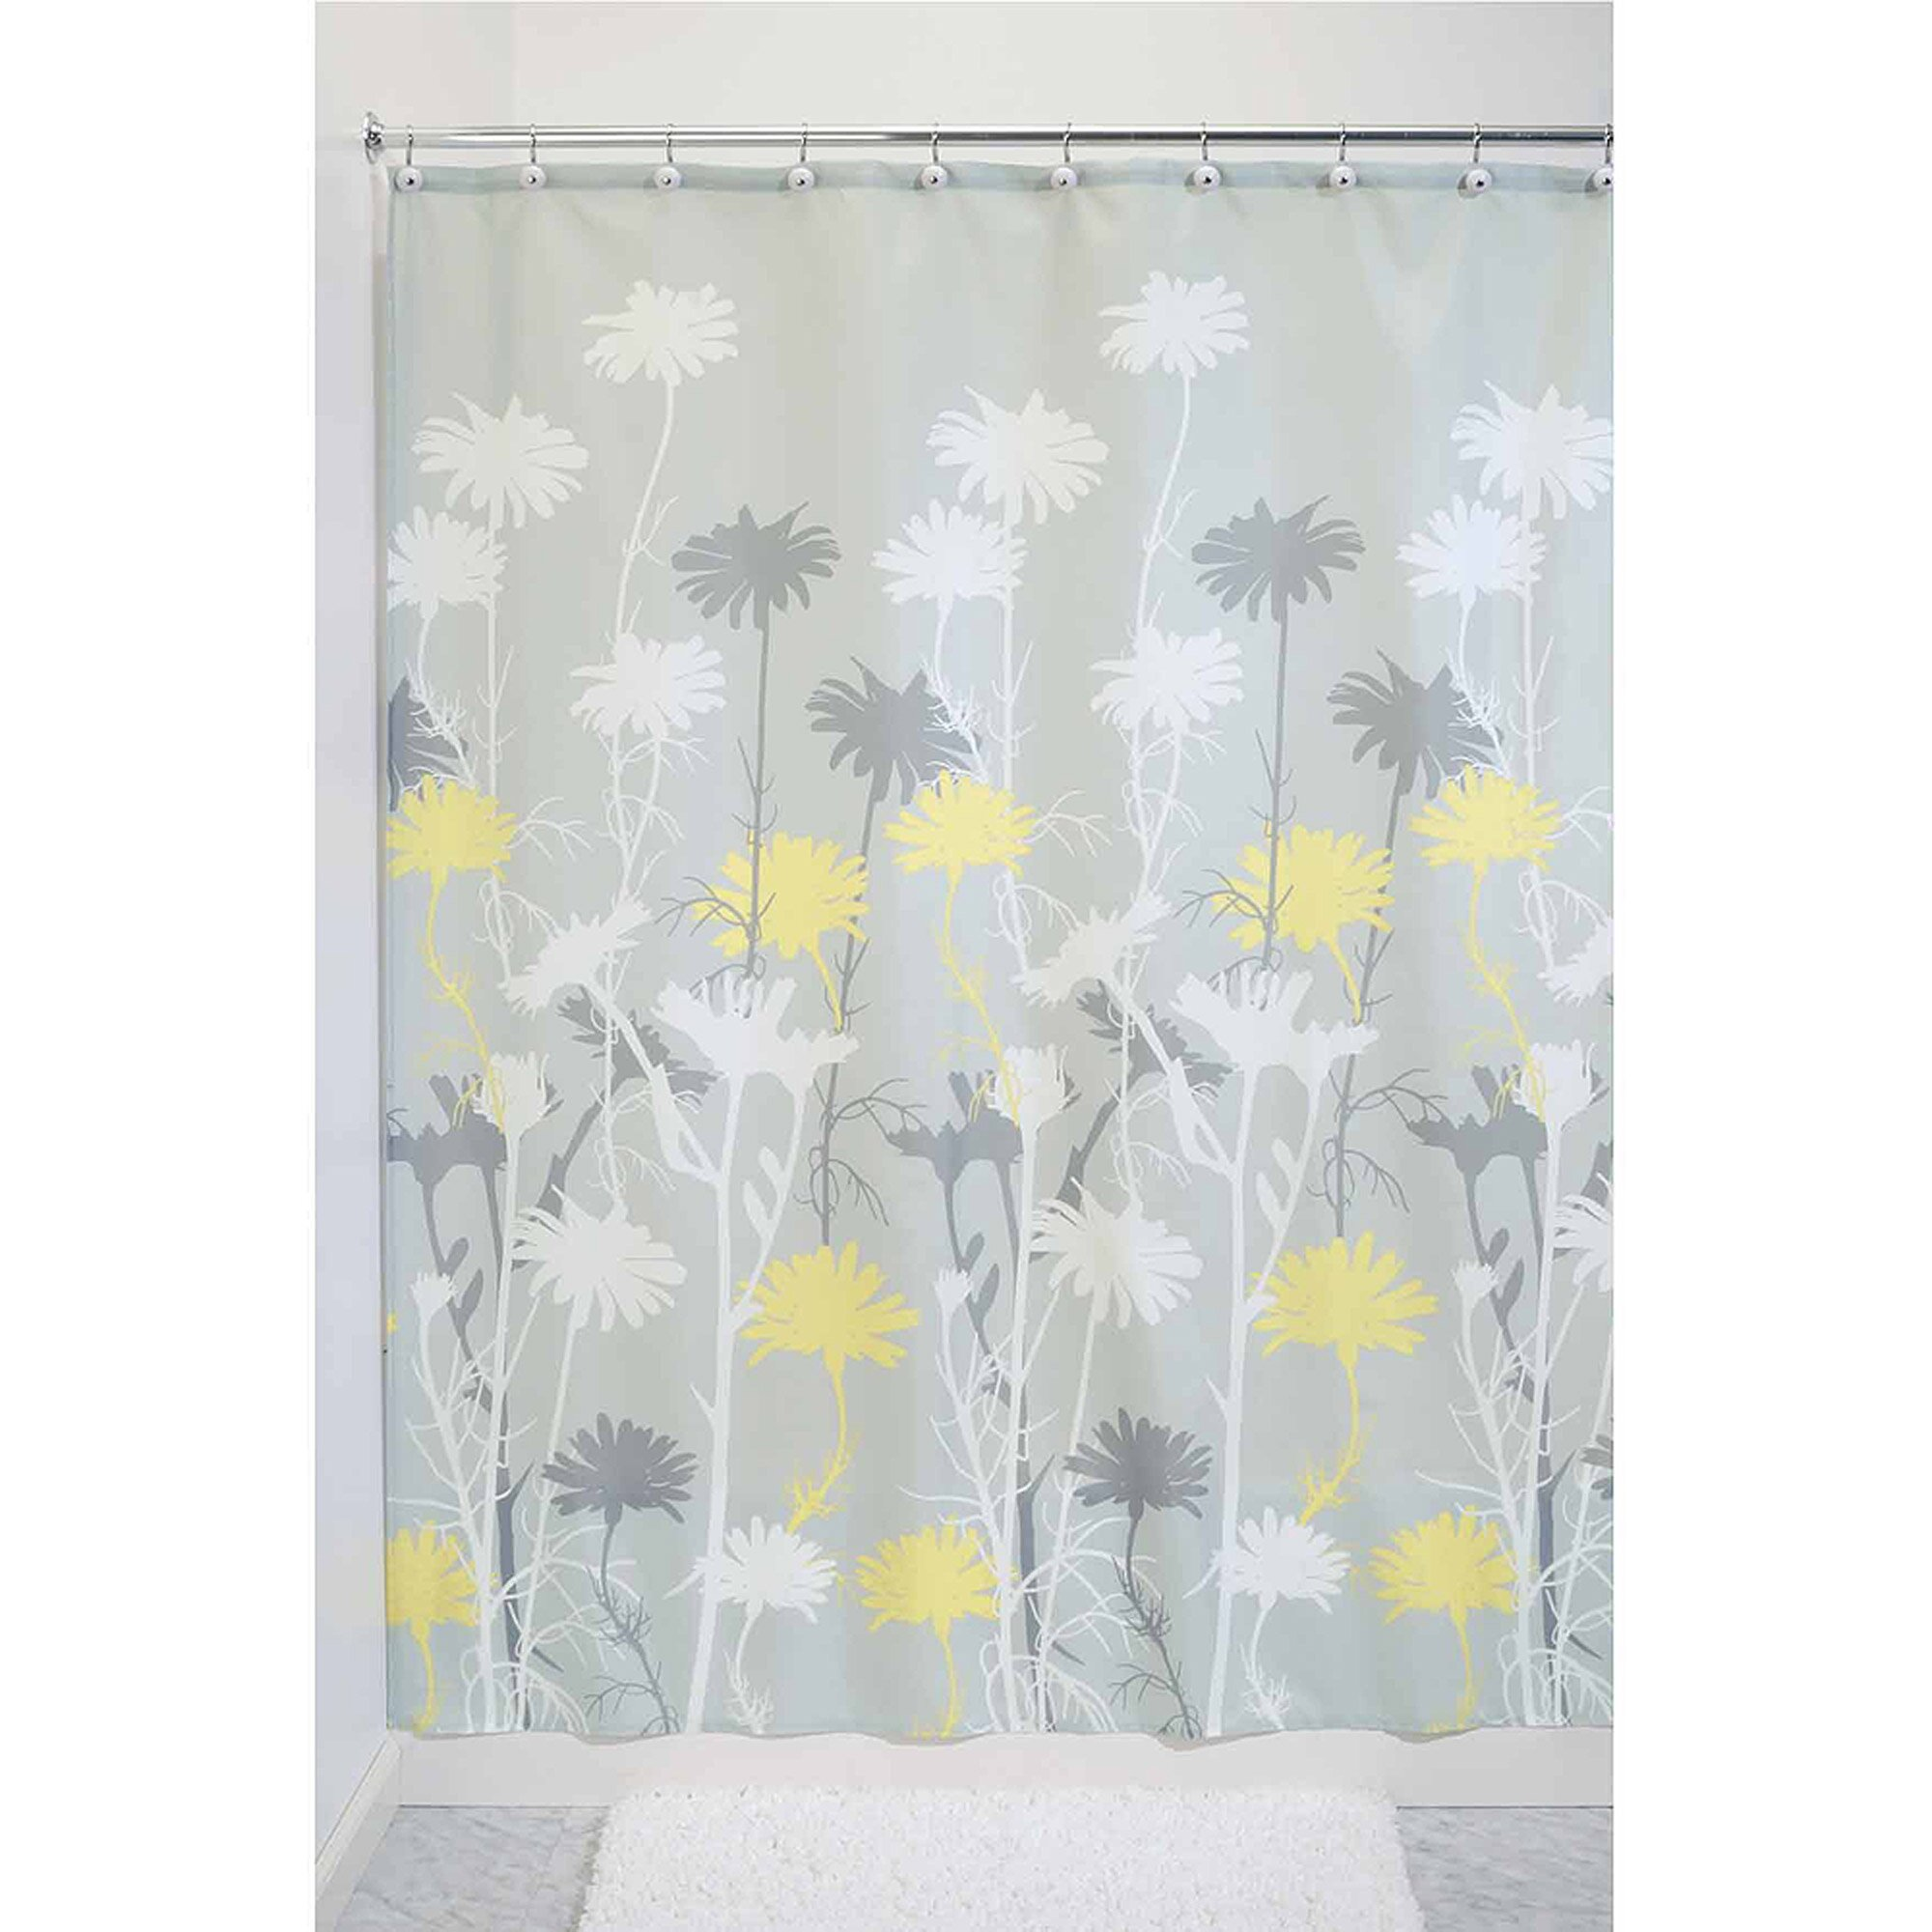 Walmart Fabric Shower Curtains | Hookless Shower Curtain Walmart | Walmart Shower Curtain